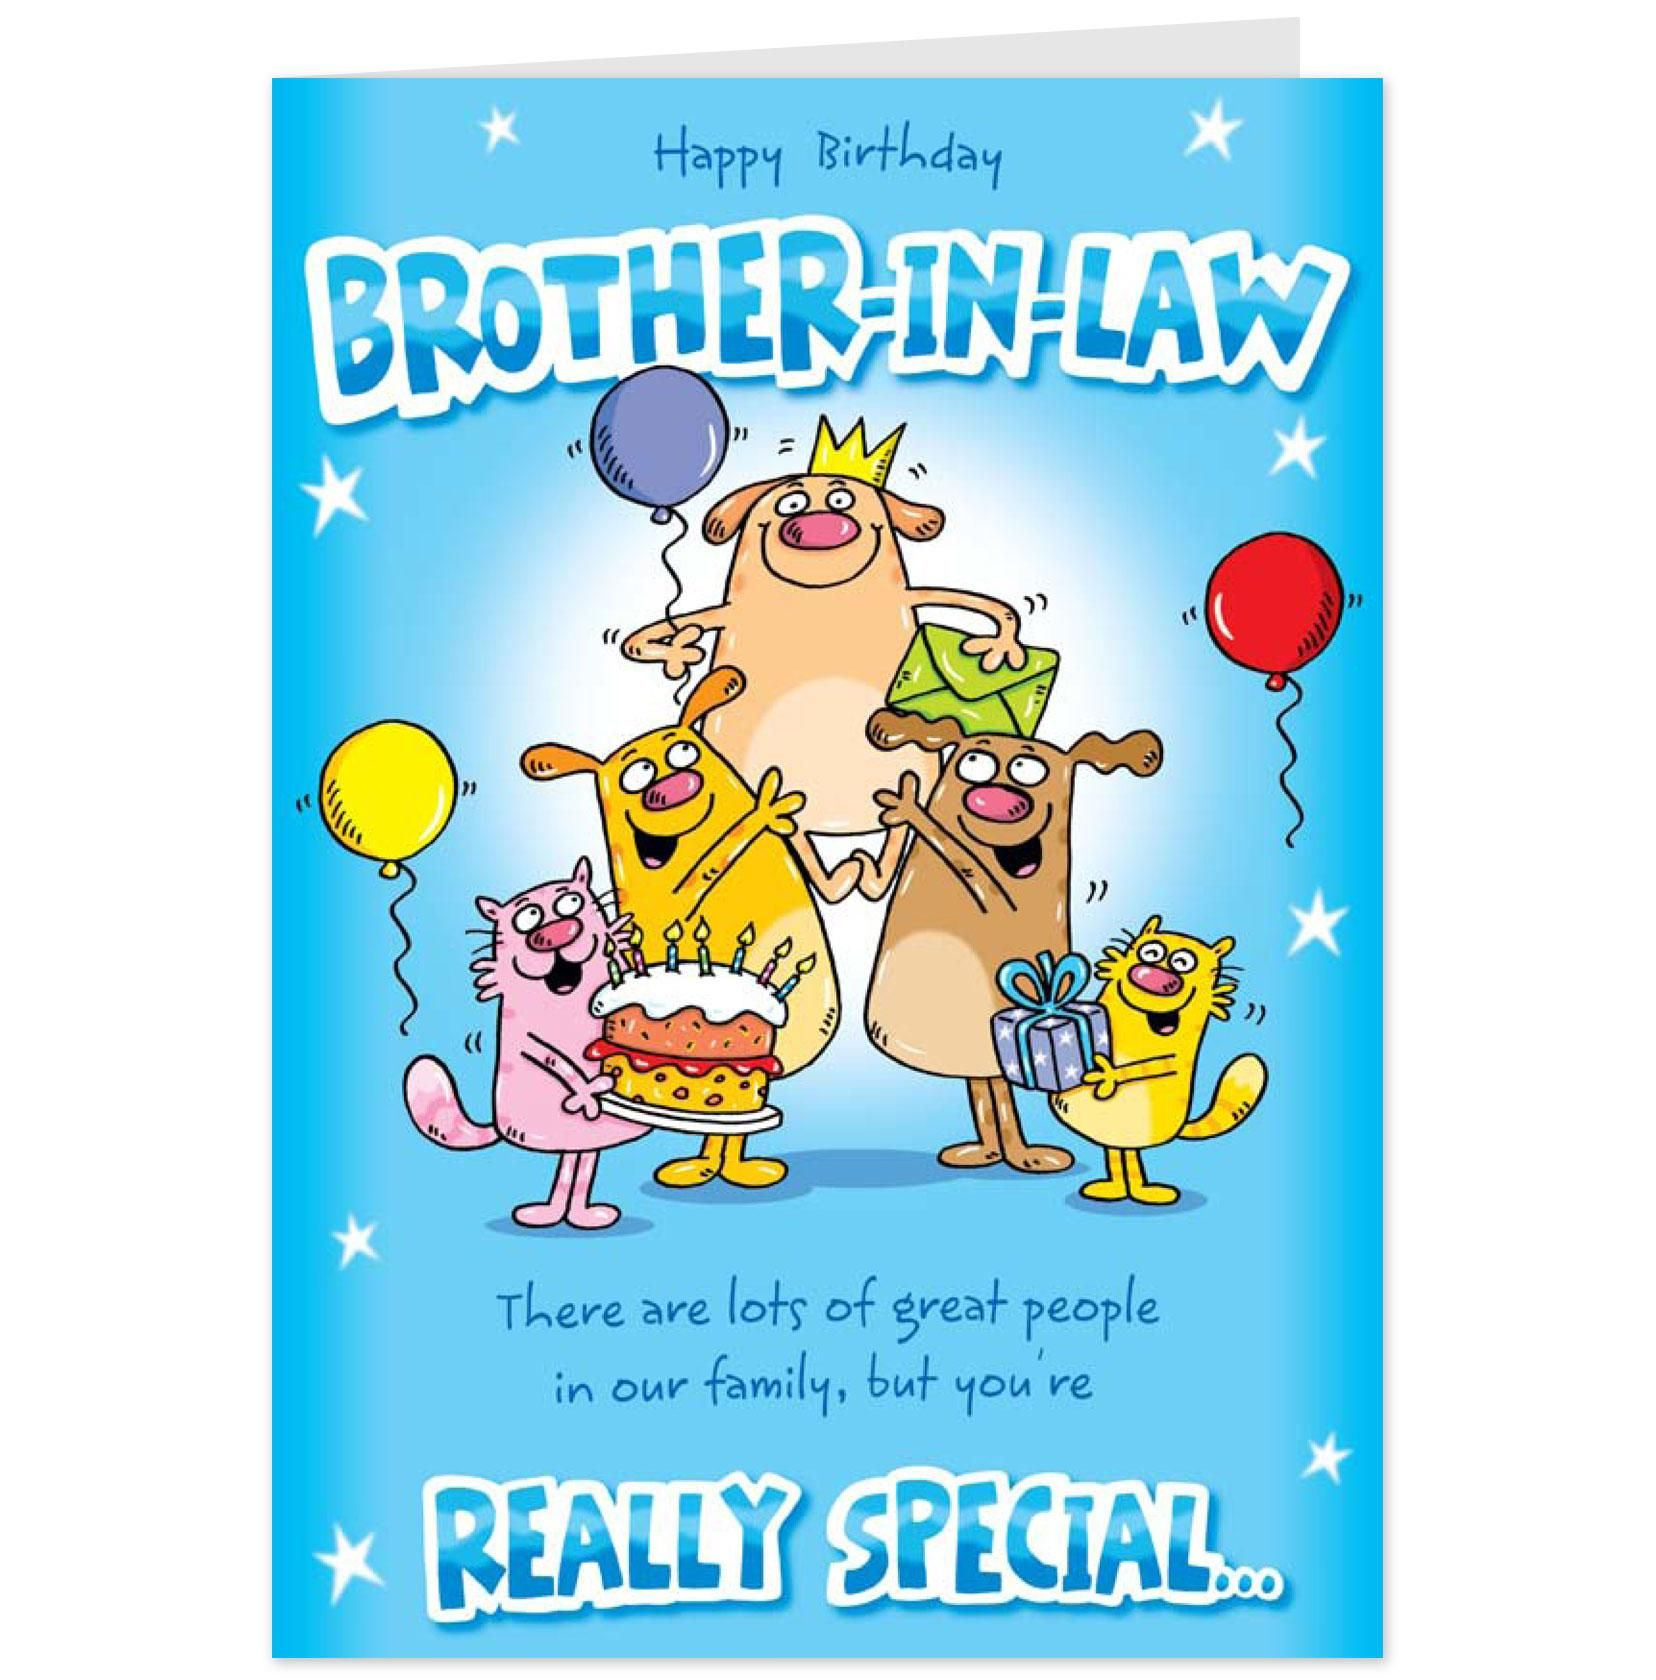 Happy Birthday Brother Funny Messages Really special